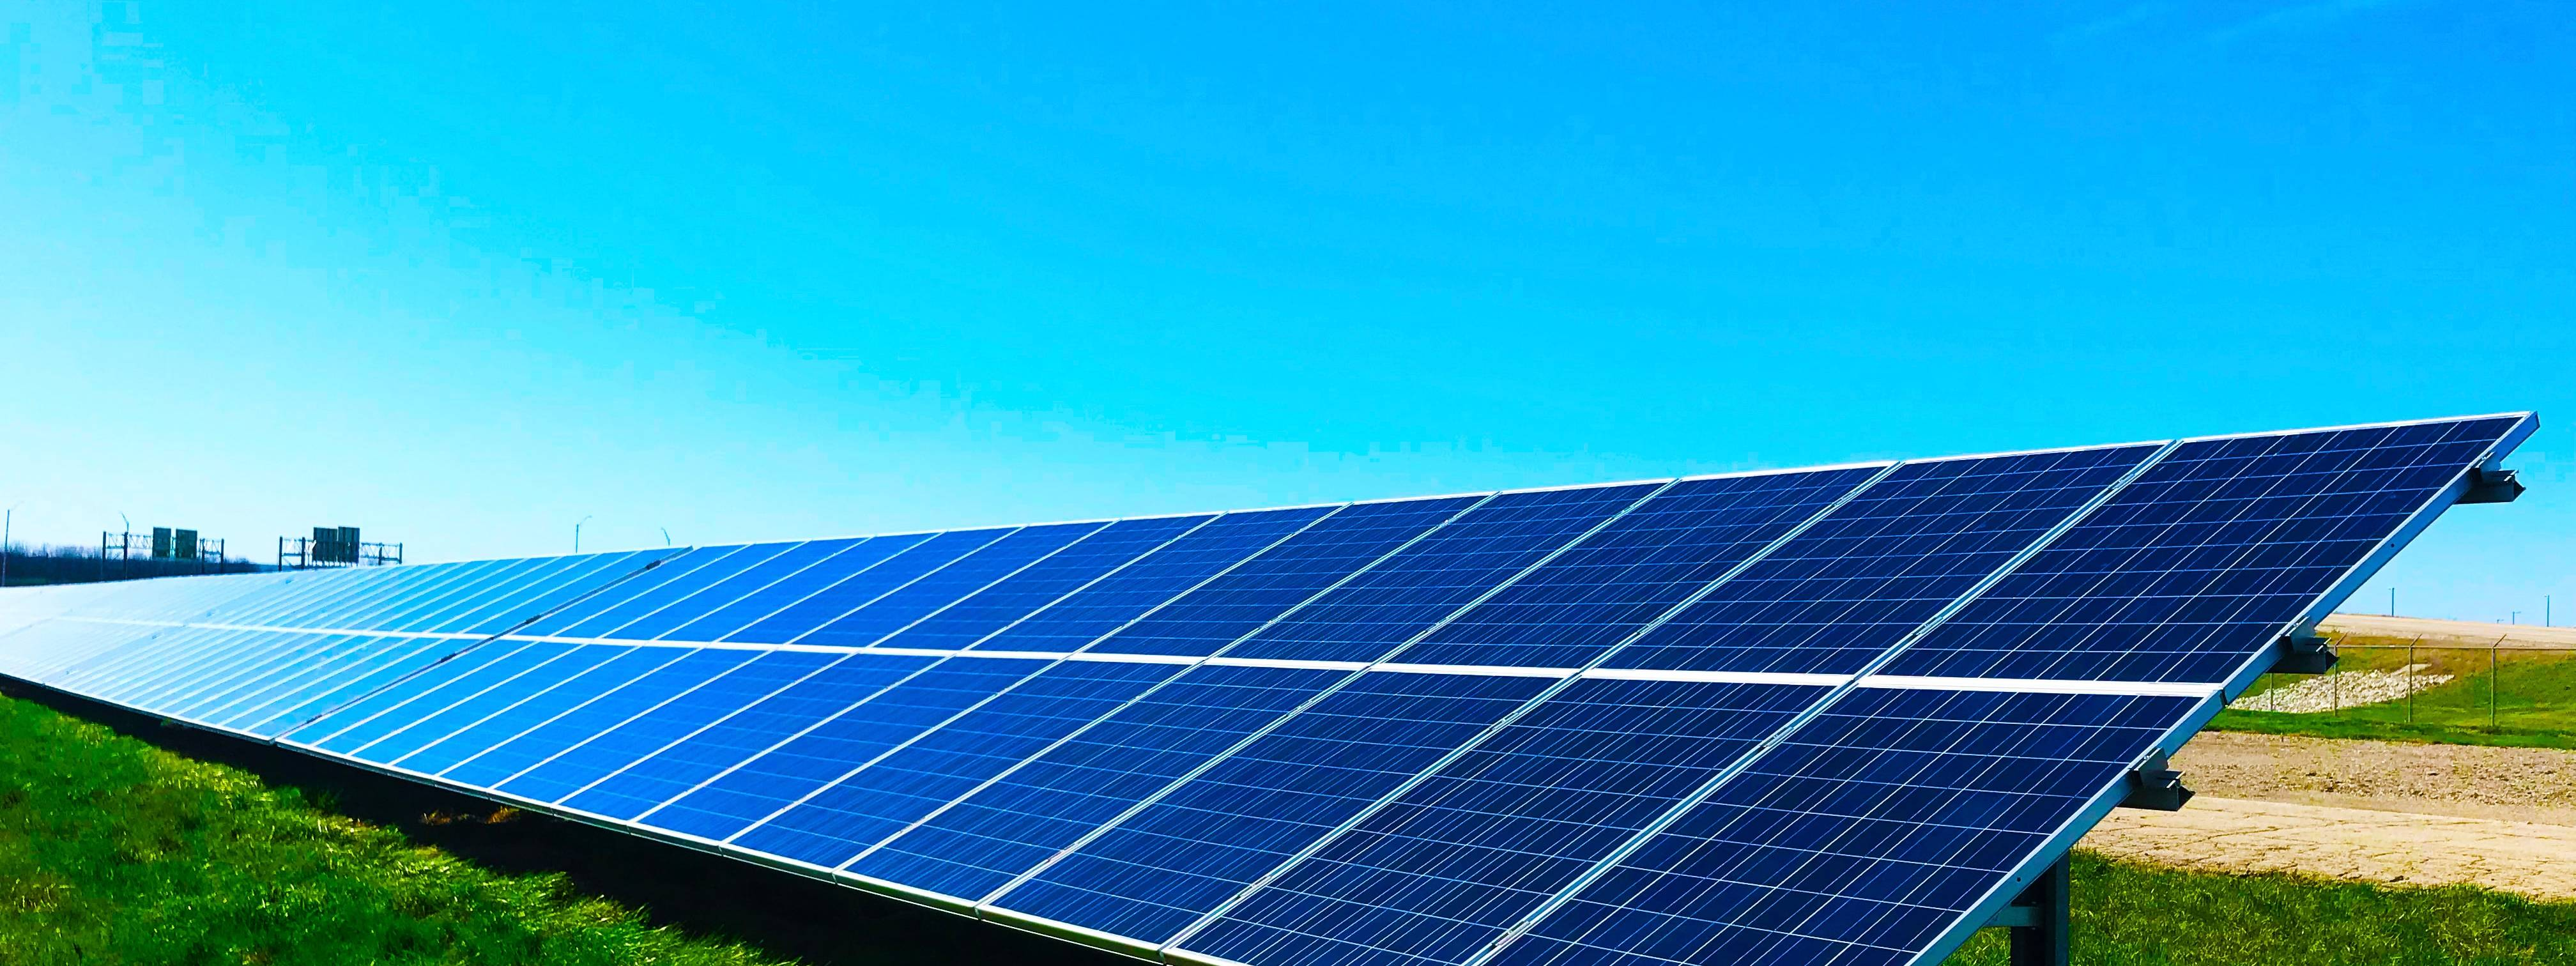 Community solar projects can make solar available to all.